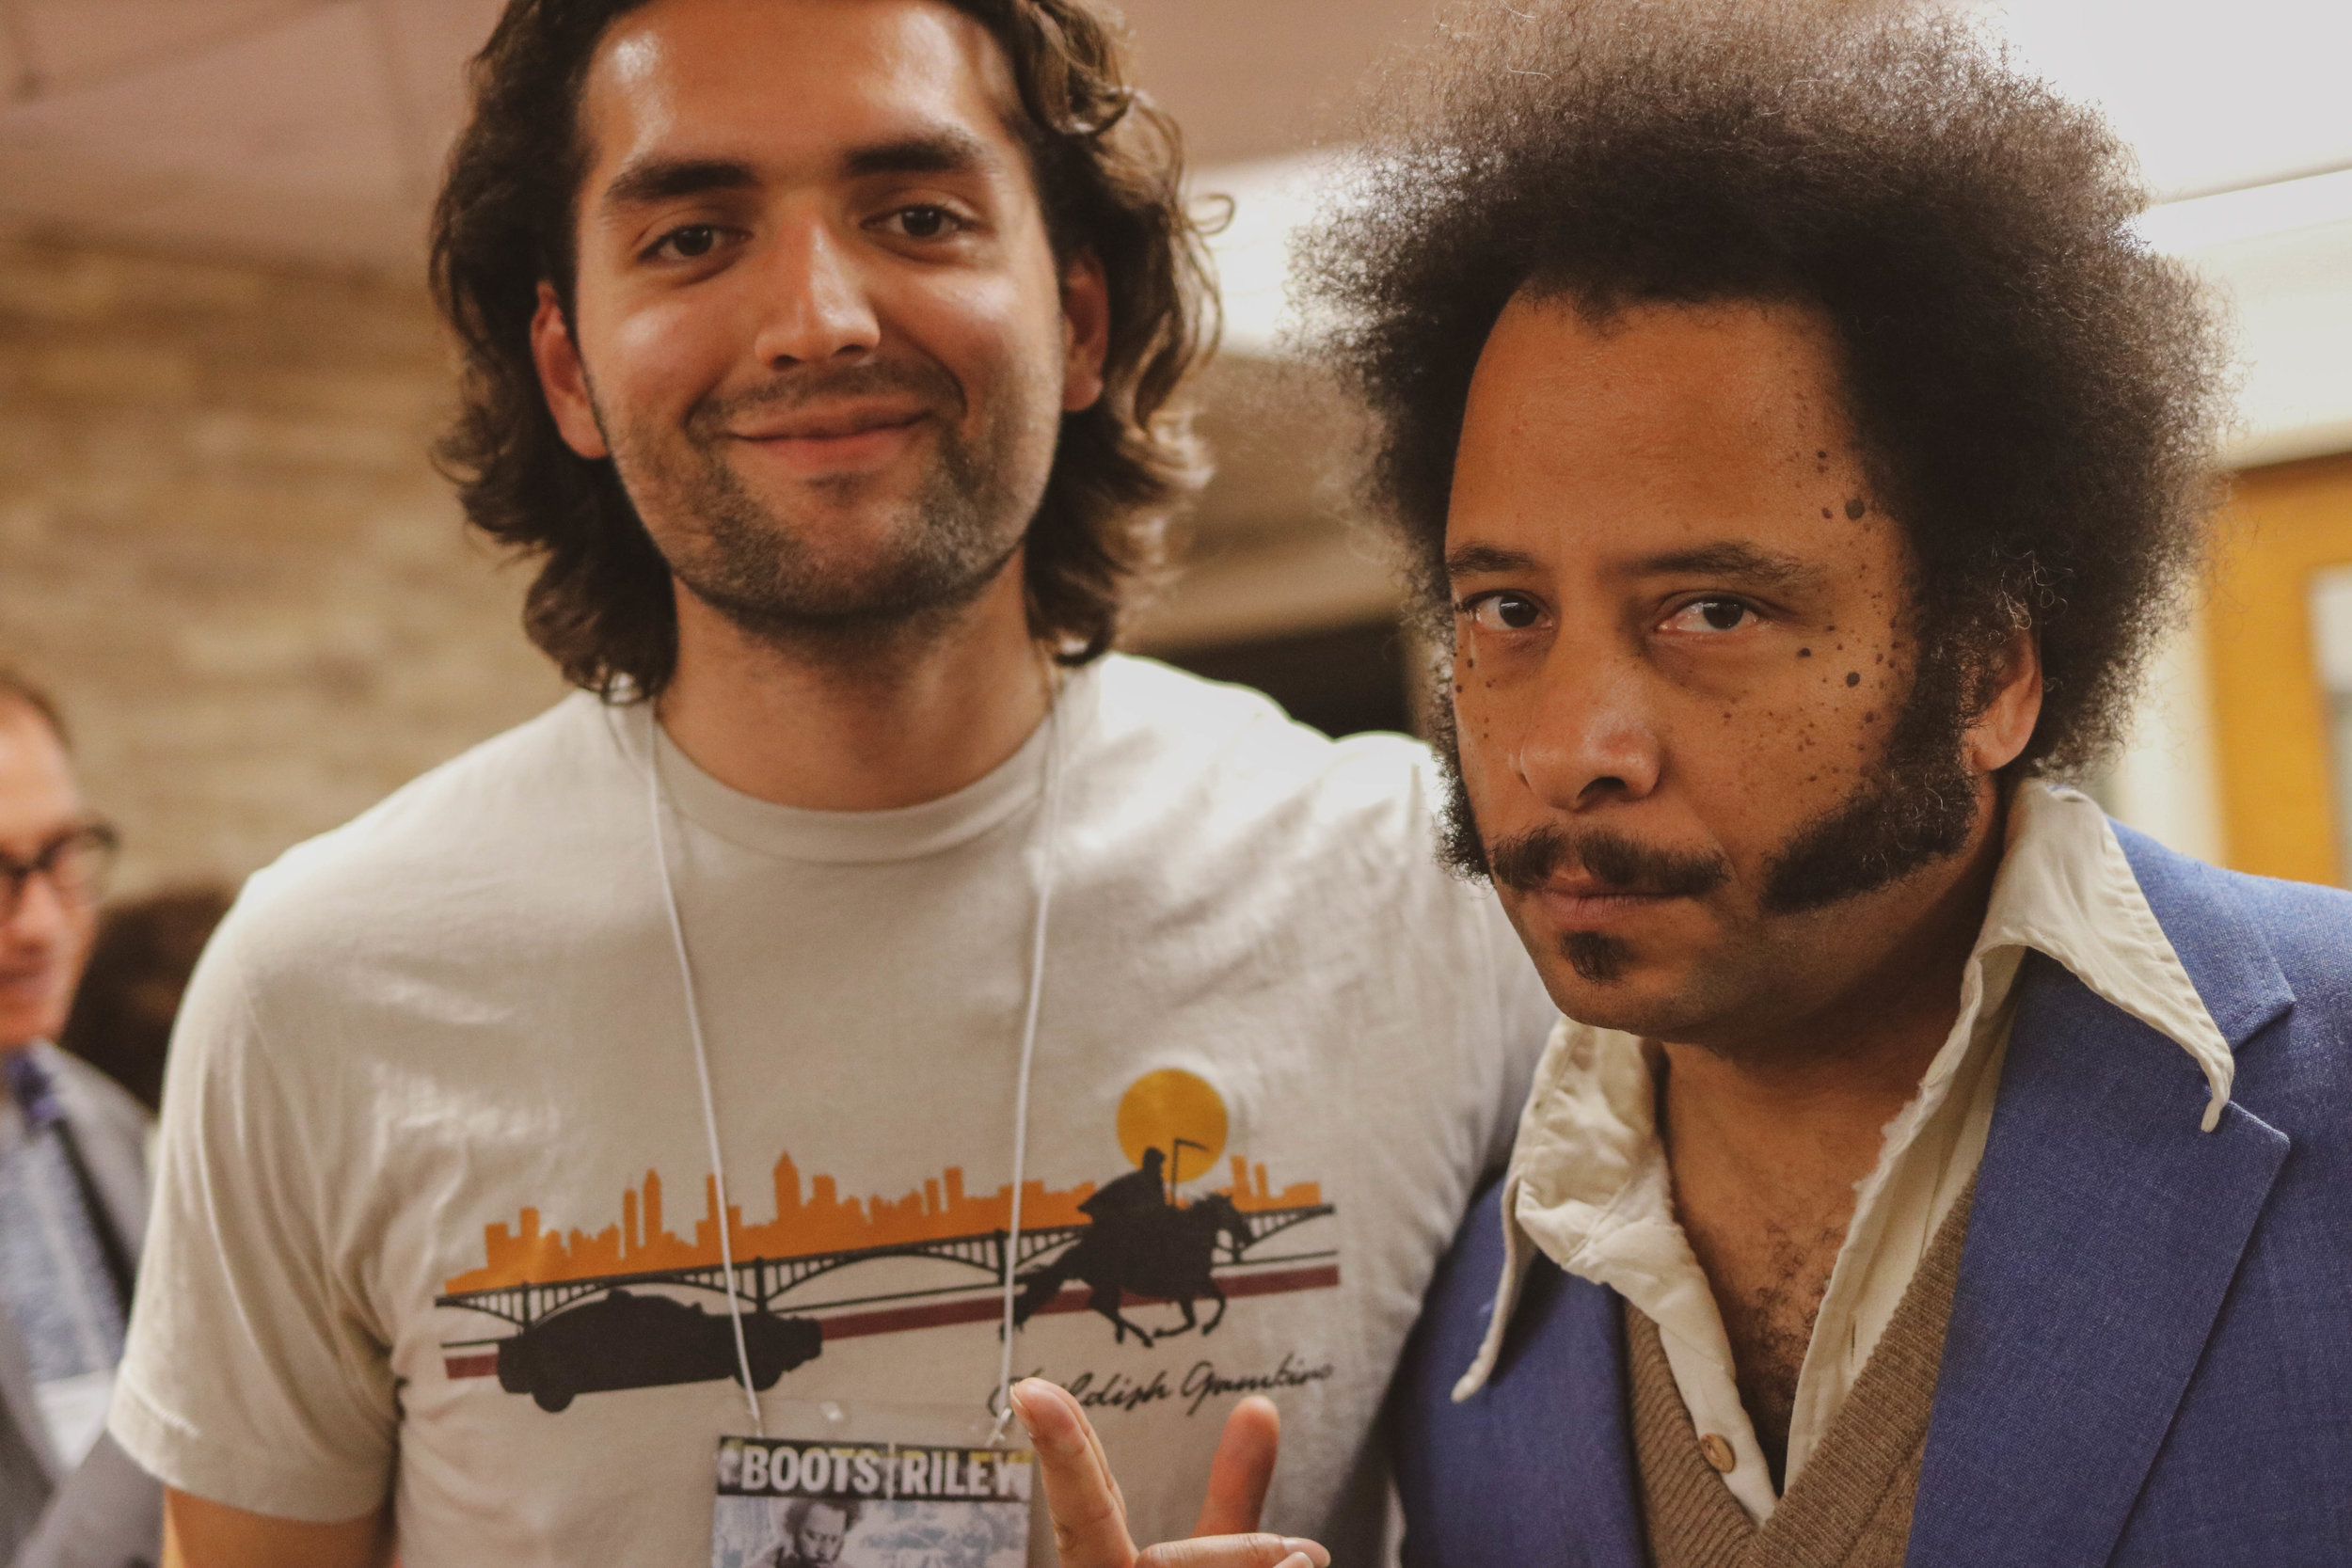 Boots Riley - Sohile Ali pictured with the Sorry to Bother You writer and director, Boots Riley. October 2018. Indiana University.